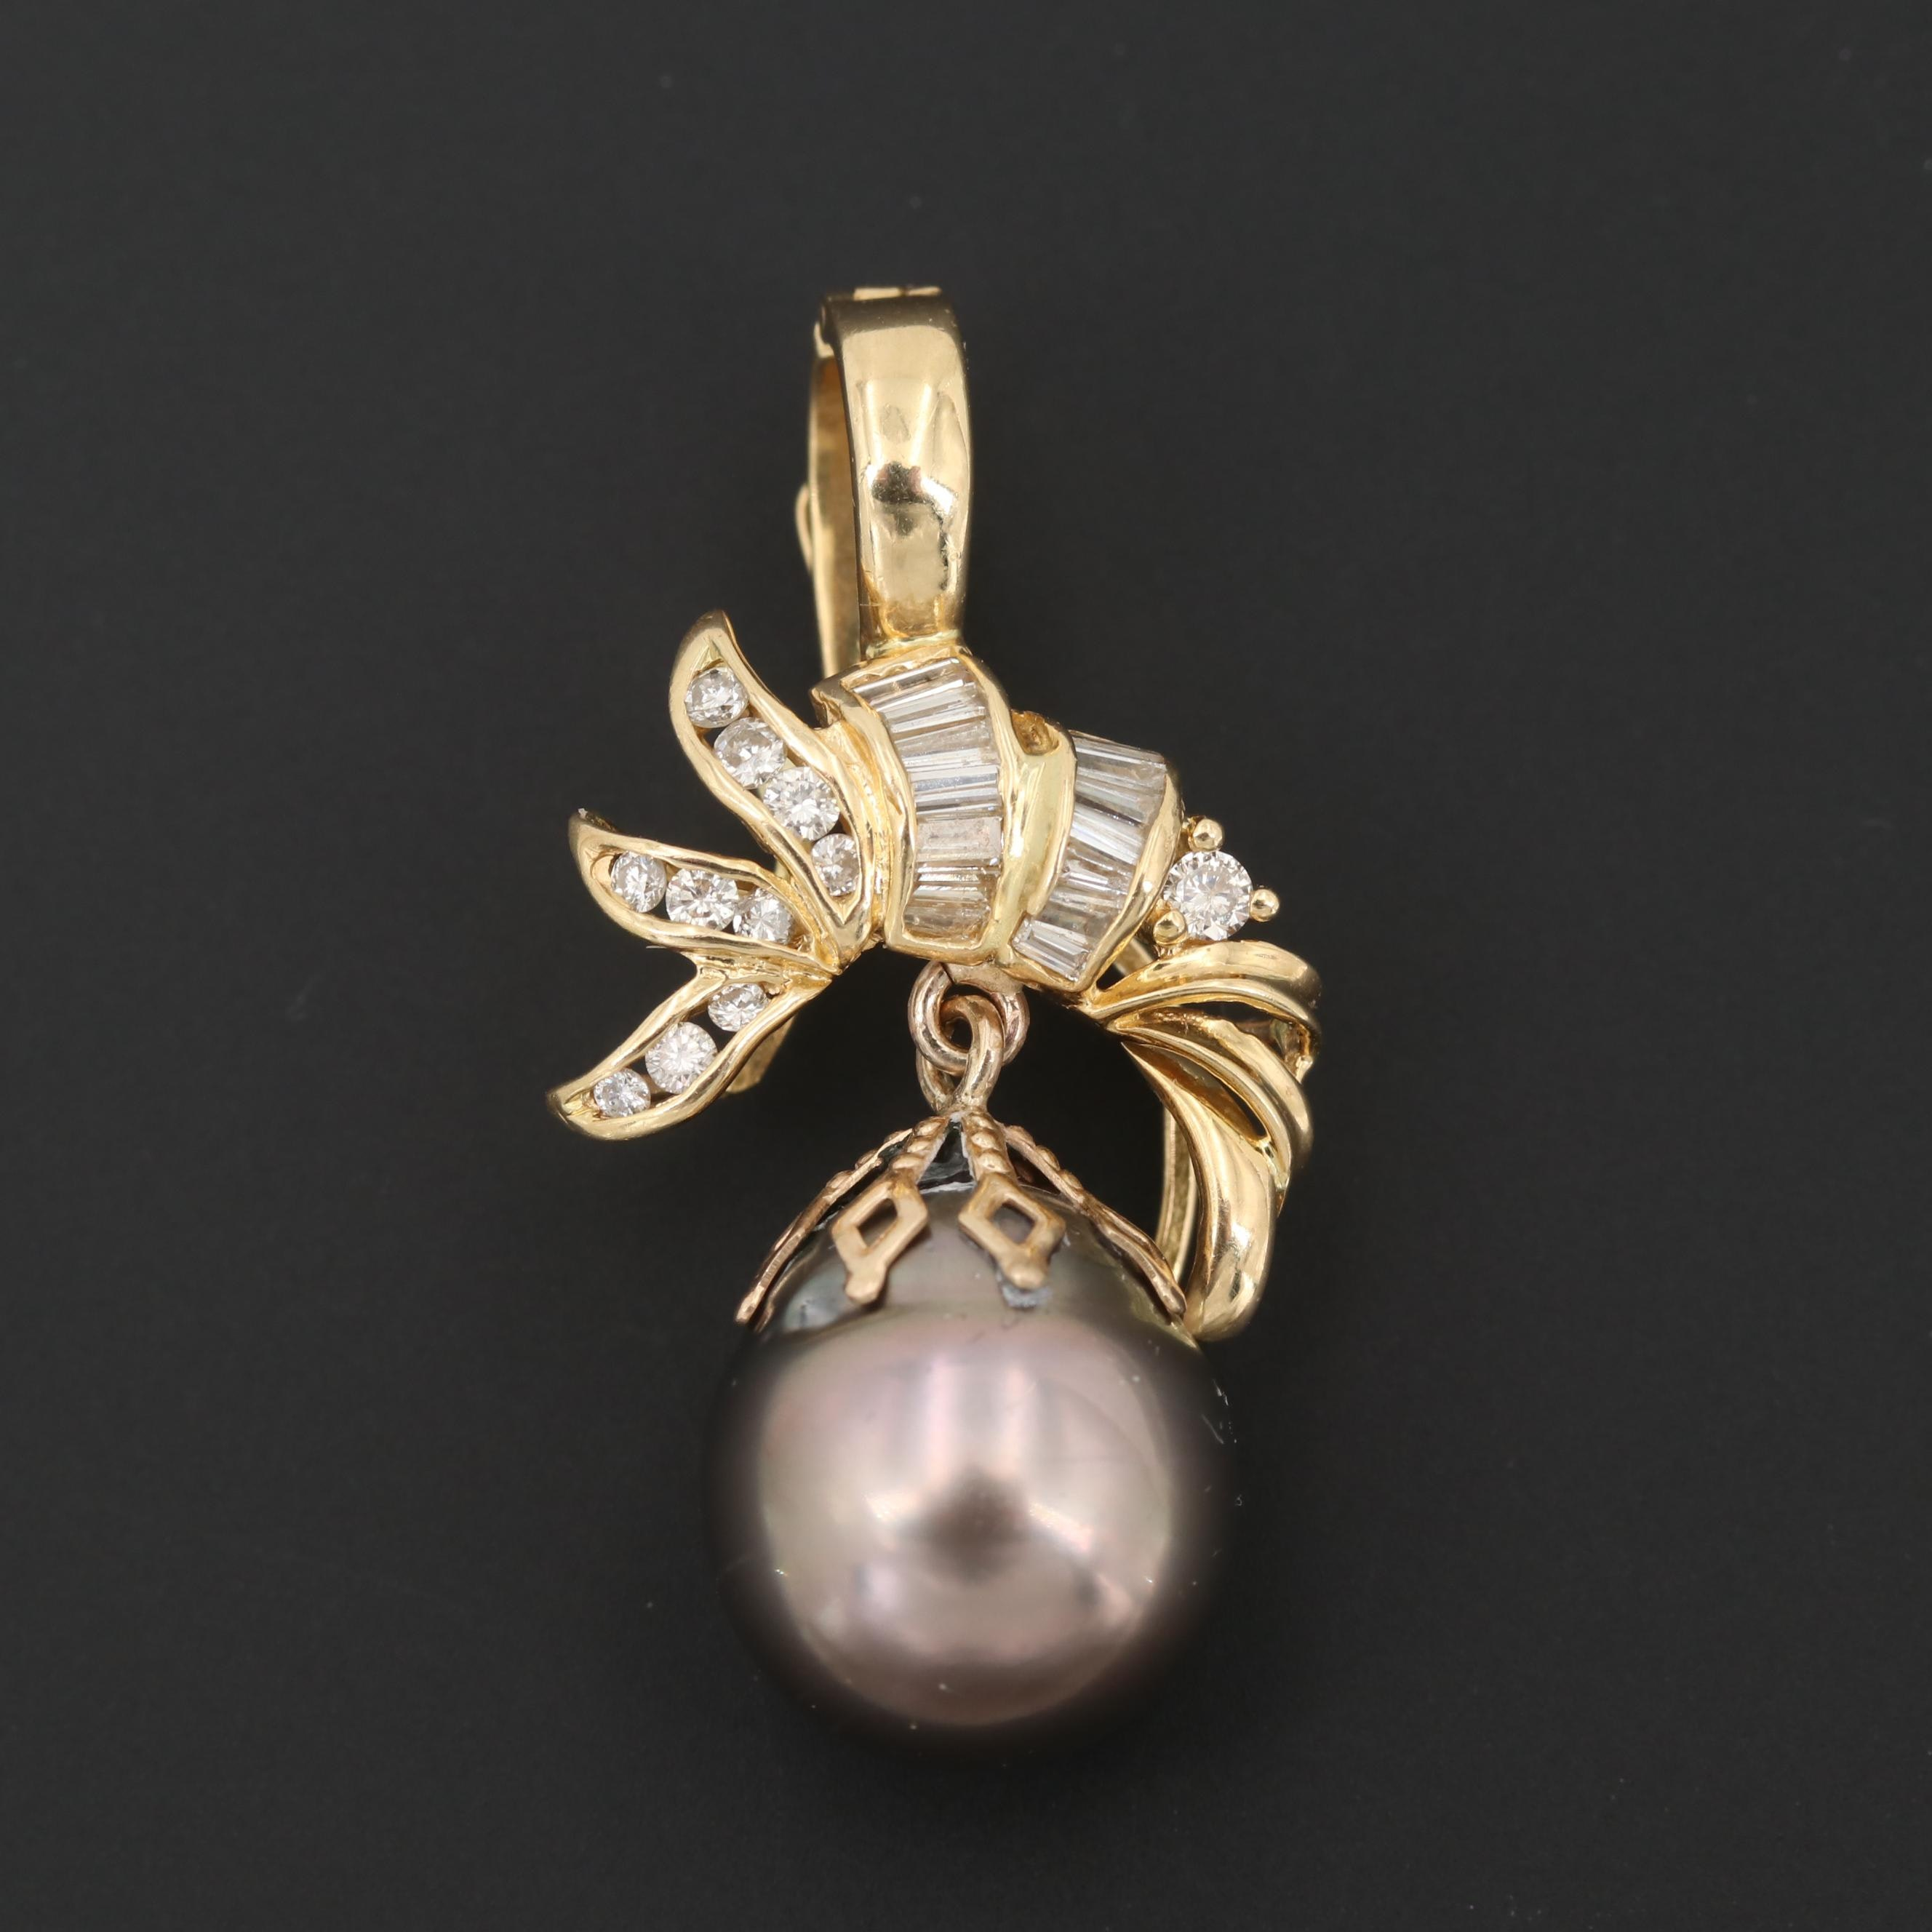 18K Yellow Gold Cultured Pearl and Diamond Enhancer Pendant